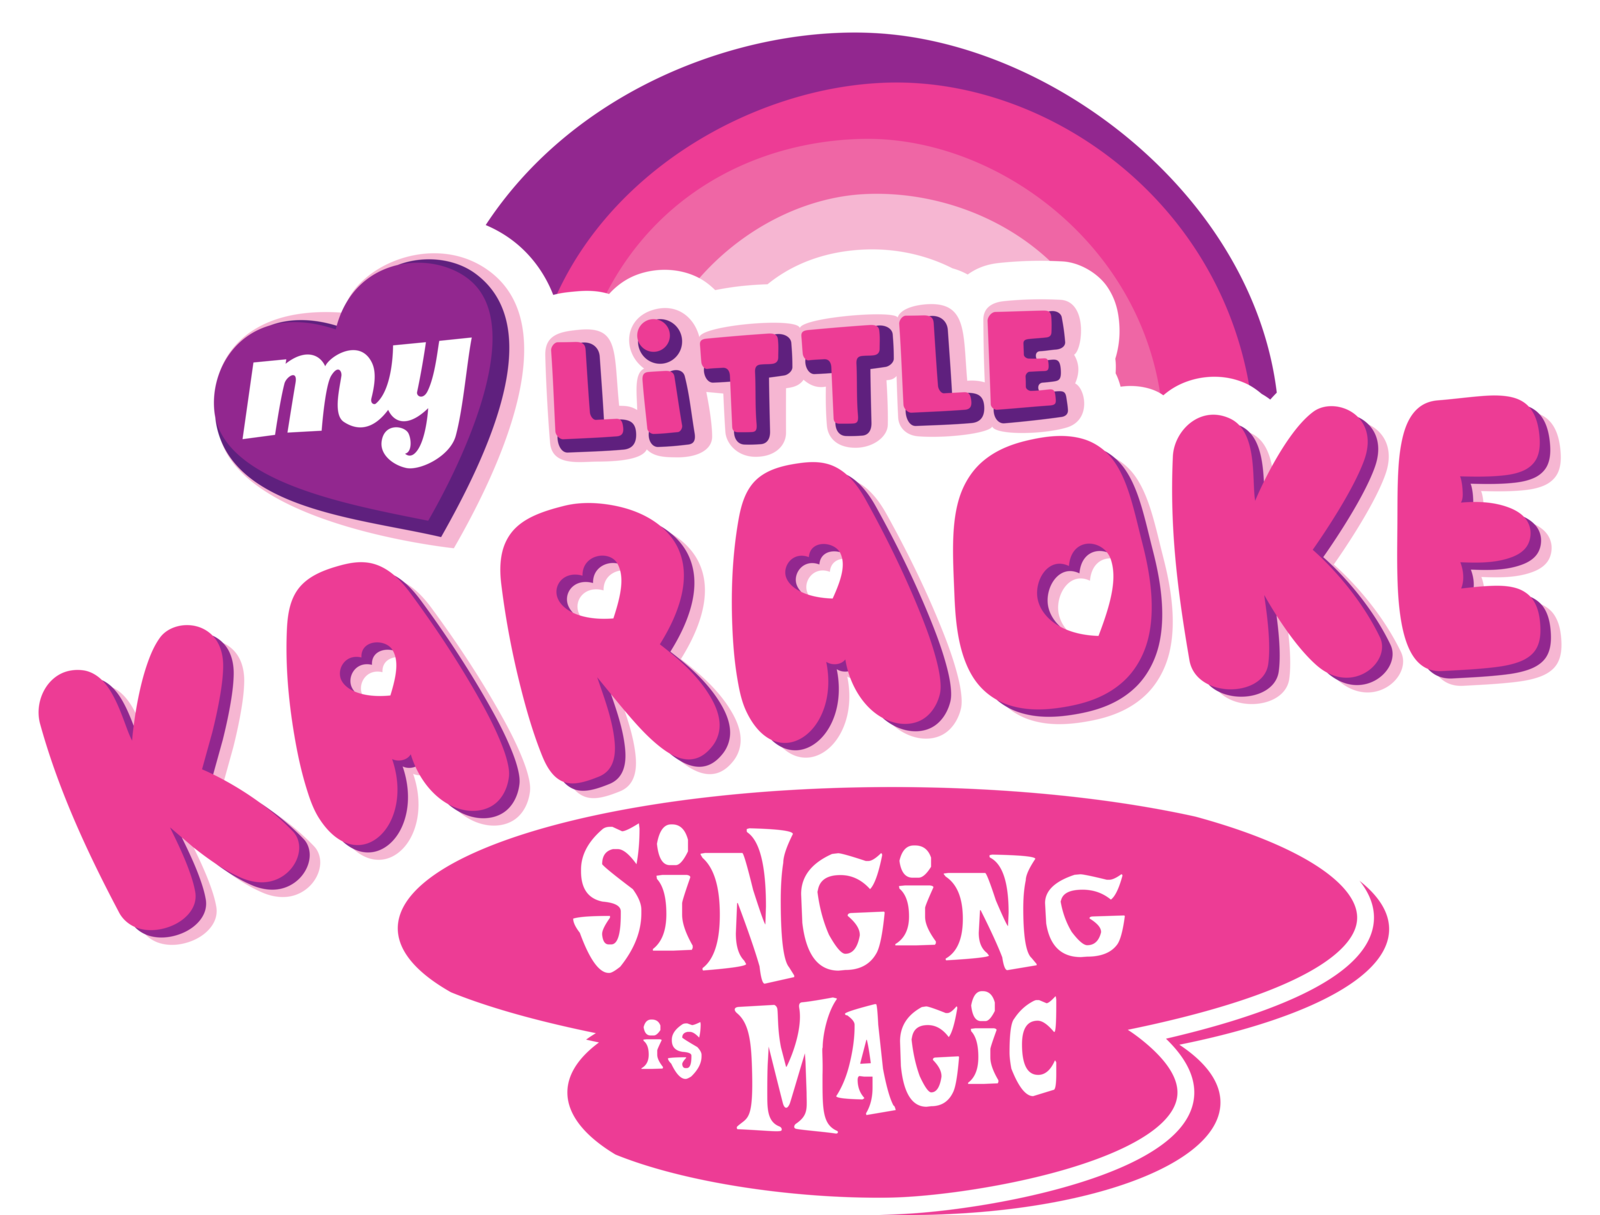 My little pony logos. Karaoke clipart logo